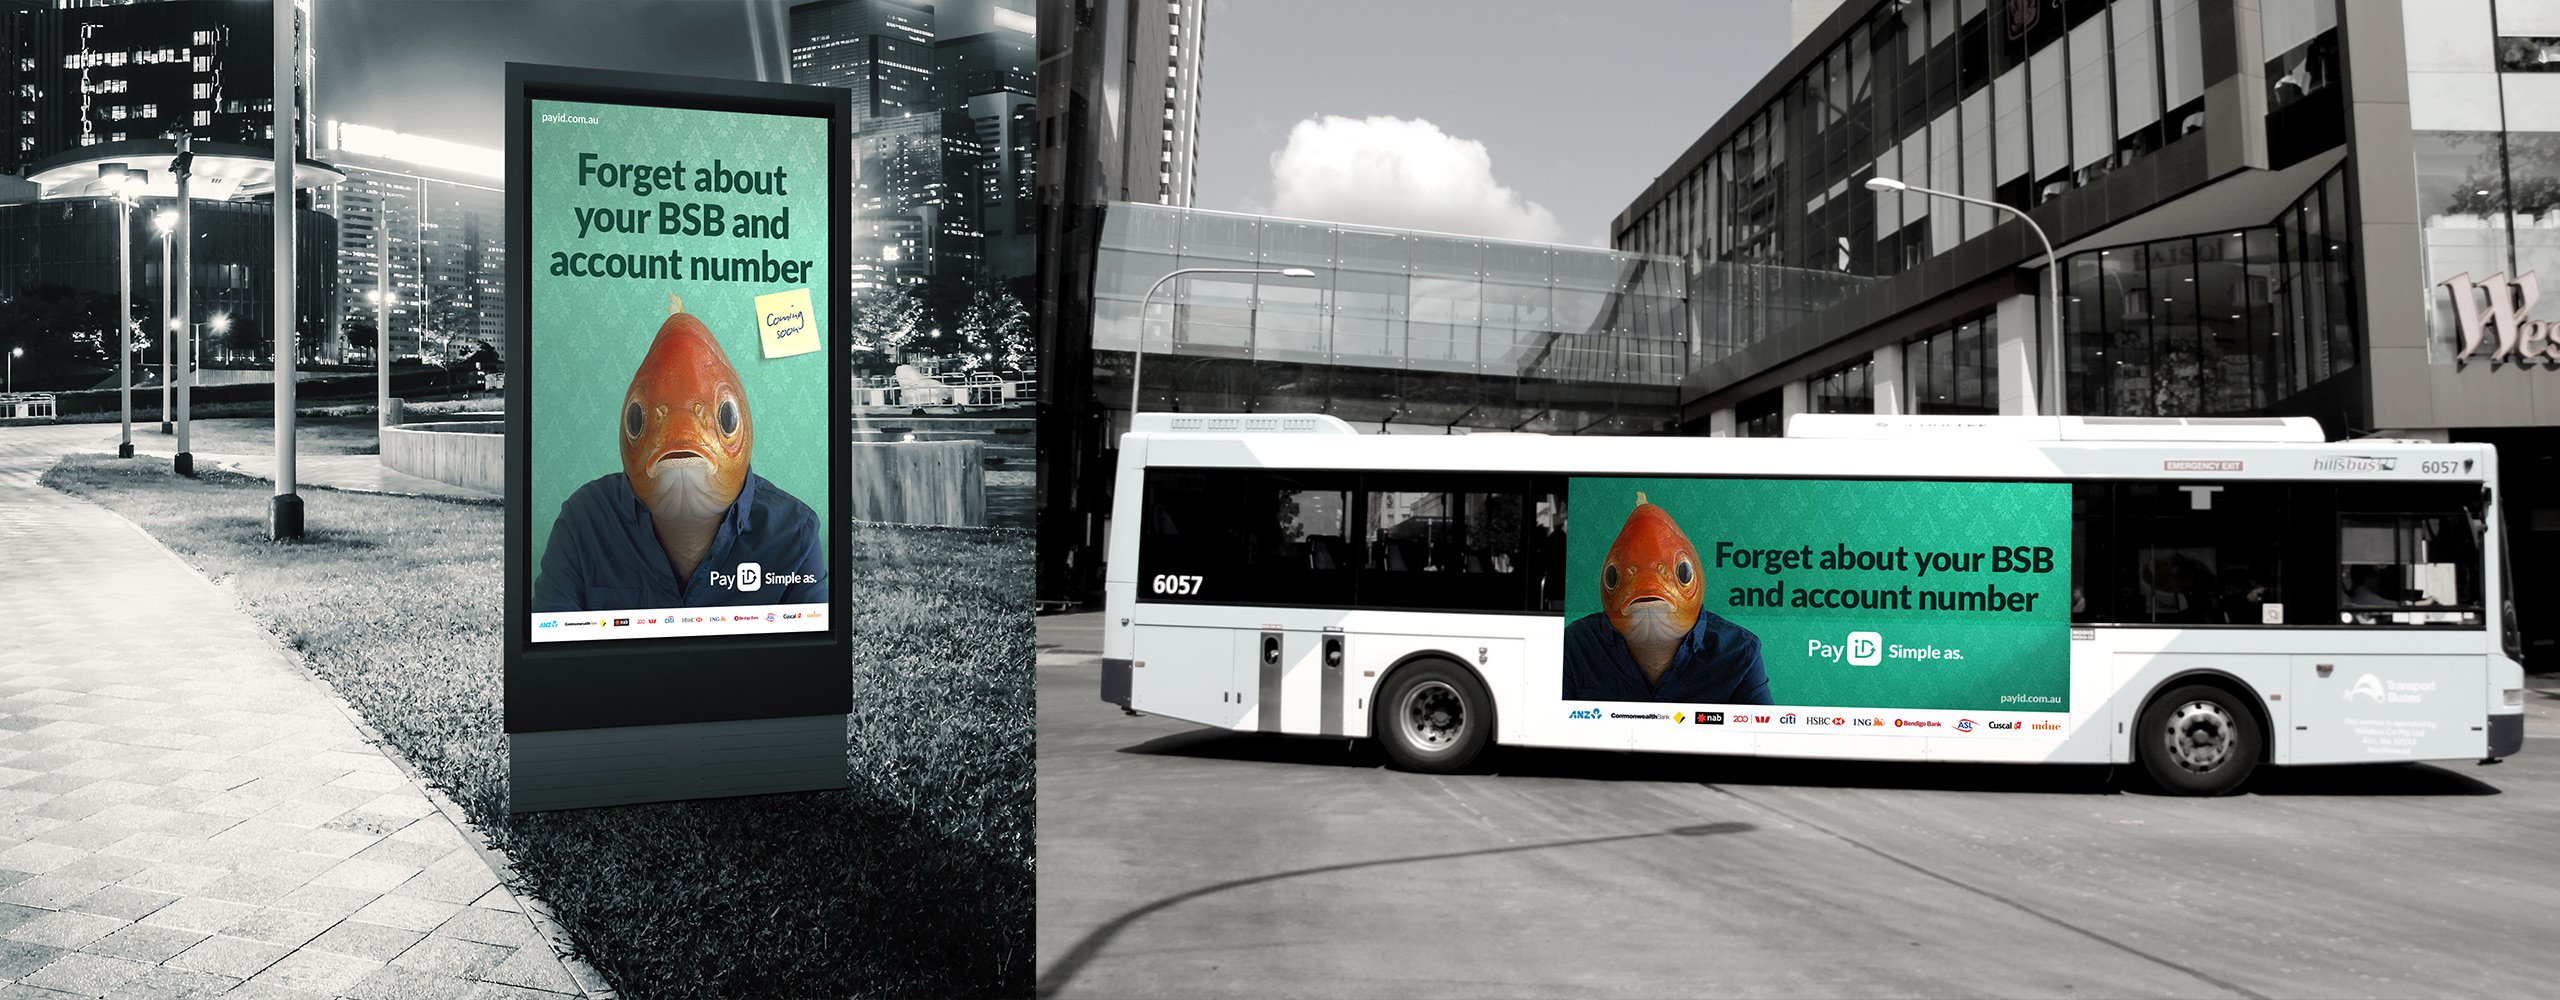 Metrolite and Bus-side